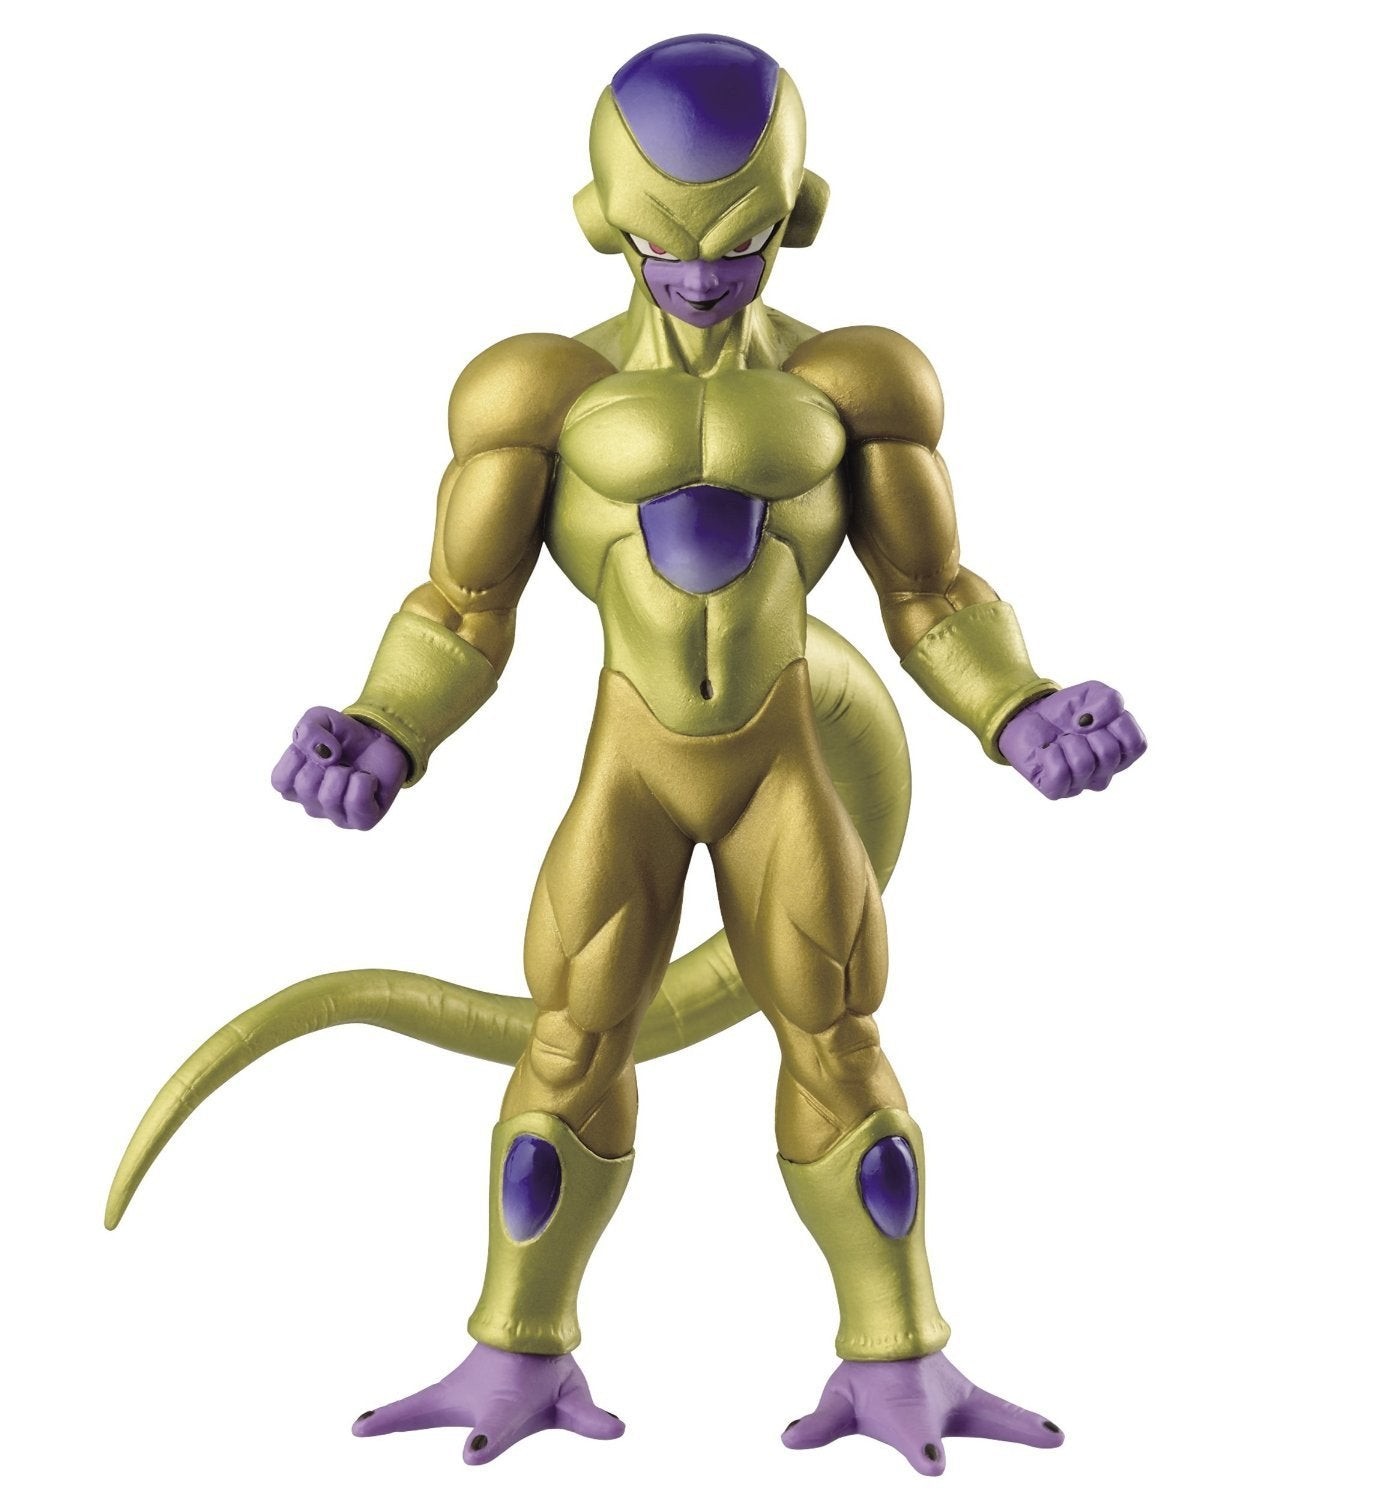 Dragonball Z DXF - Frieza Rebirth of F Ver.